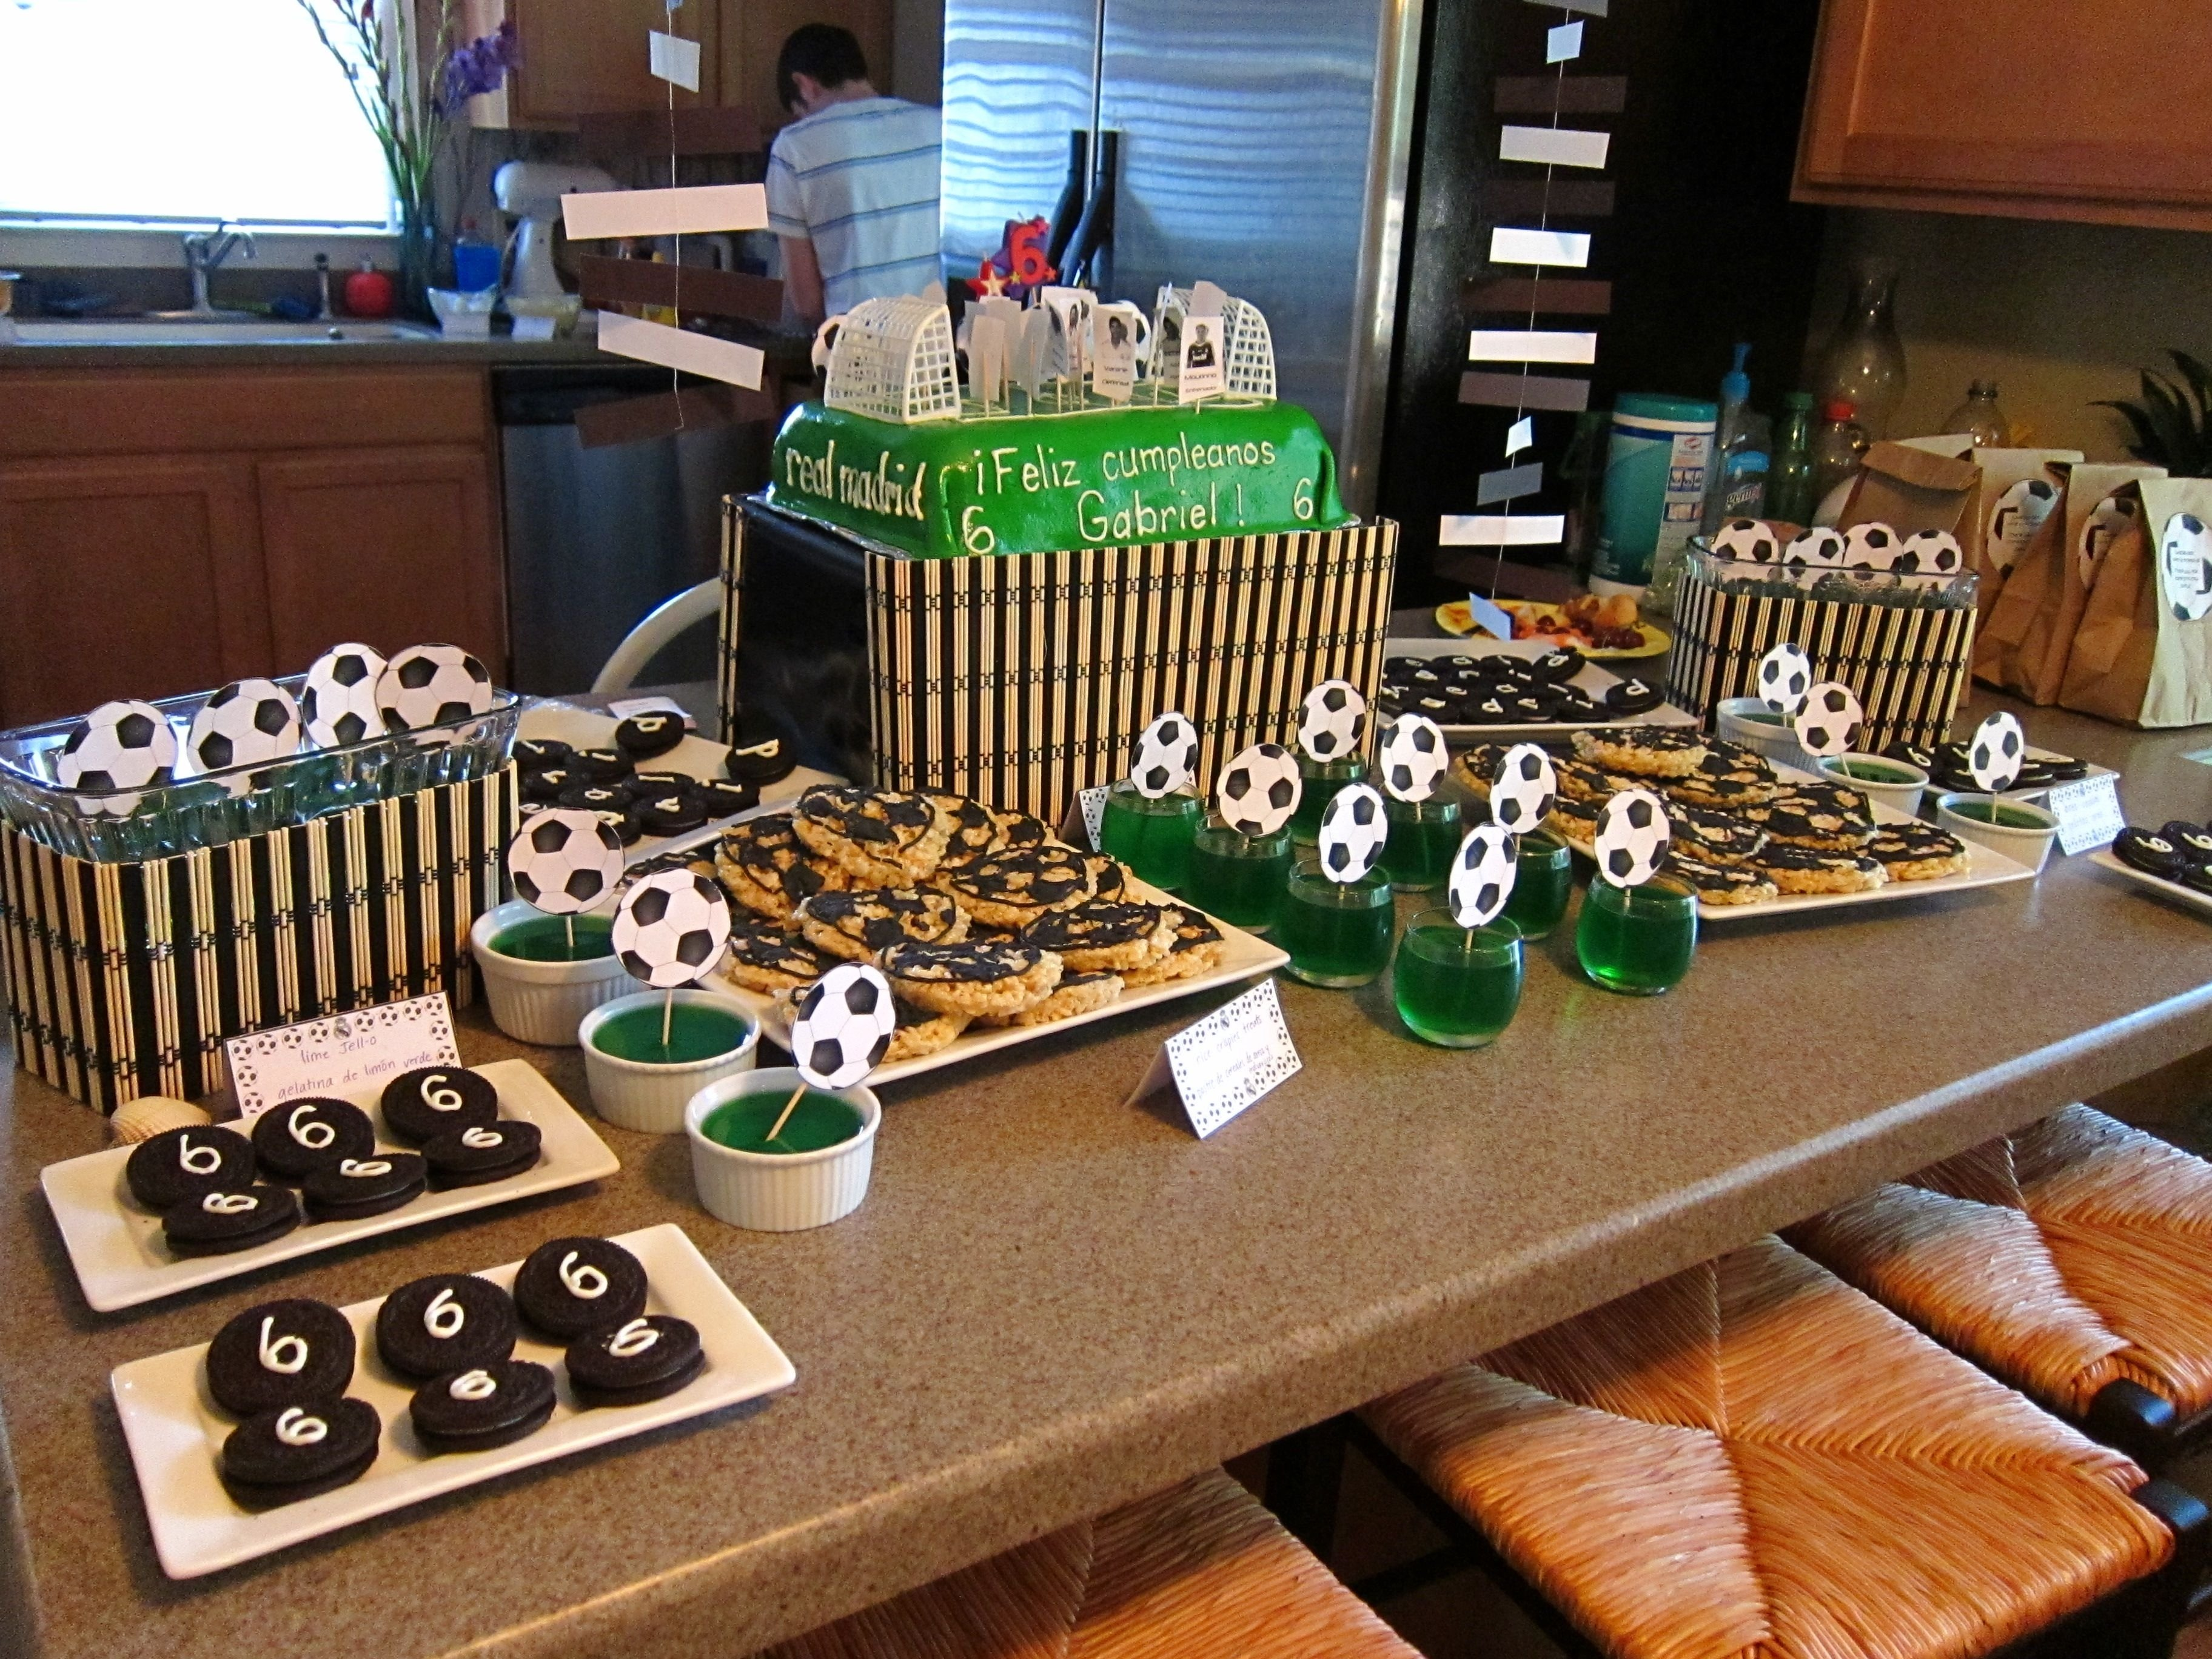 10 Perfect Birthday Party Ideas 10 Year Old Boy real madrid soccer birthday party real madrid soccer soccer 1 2021